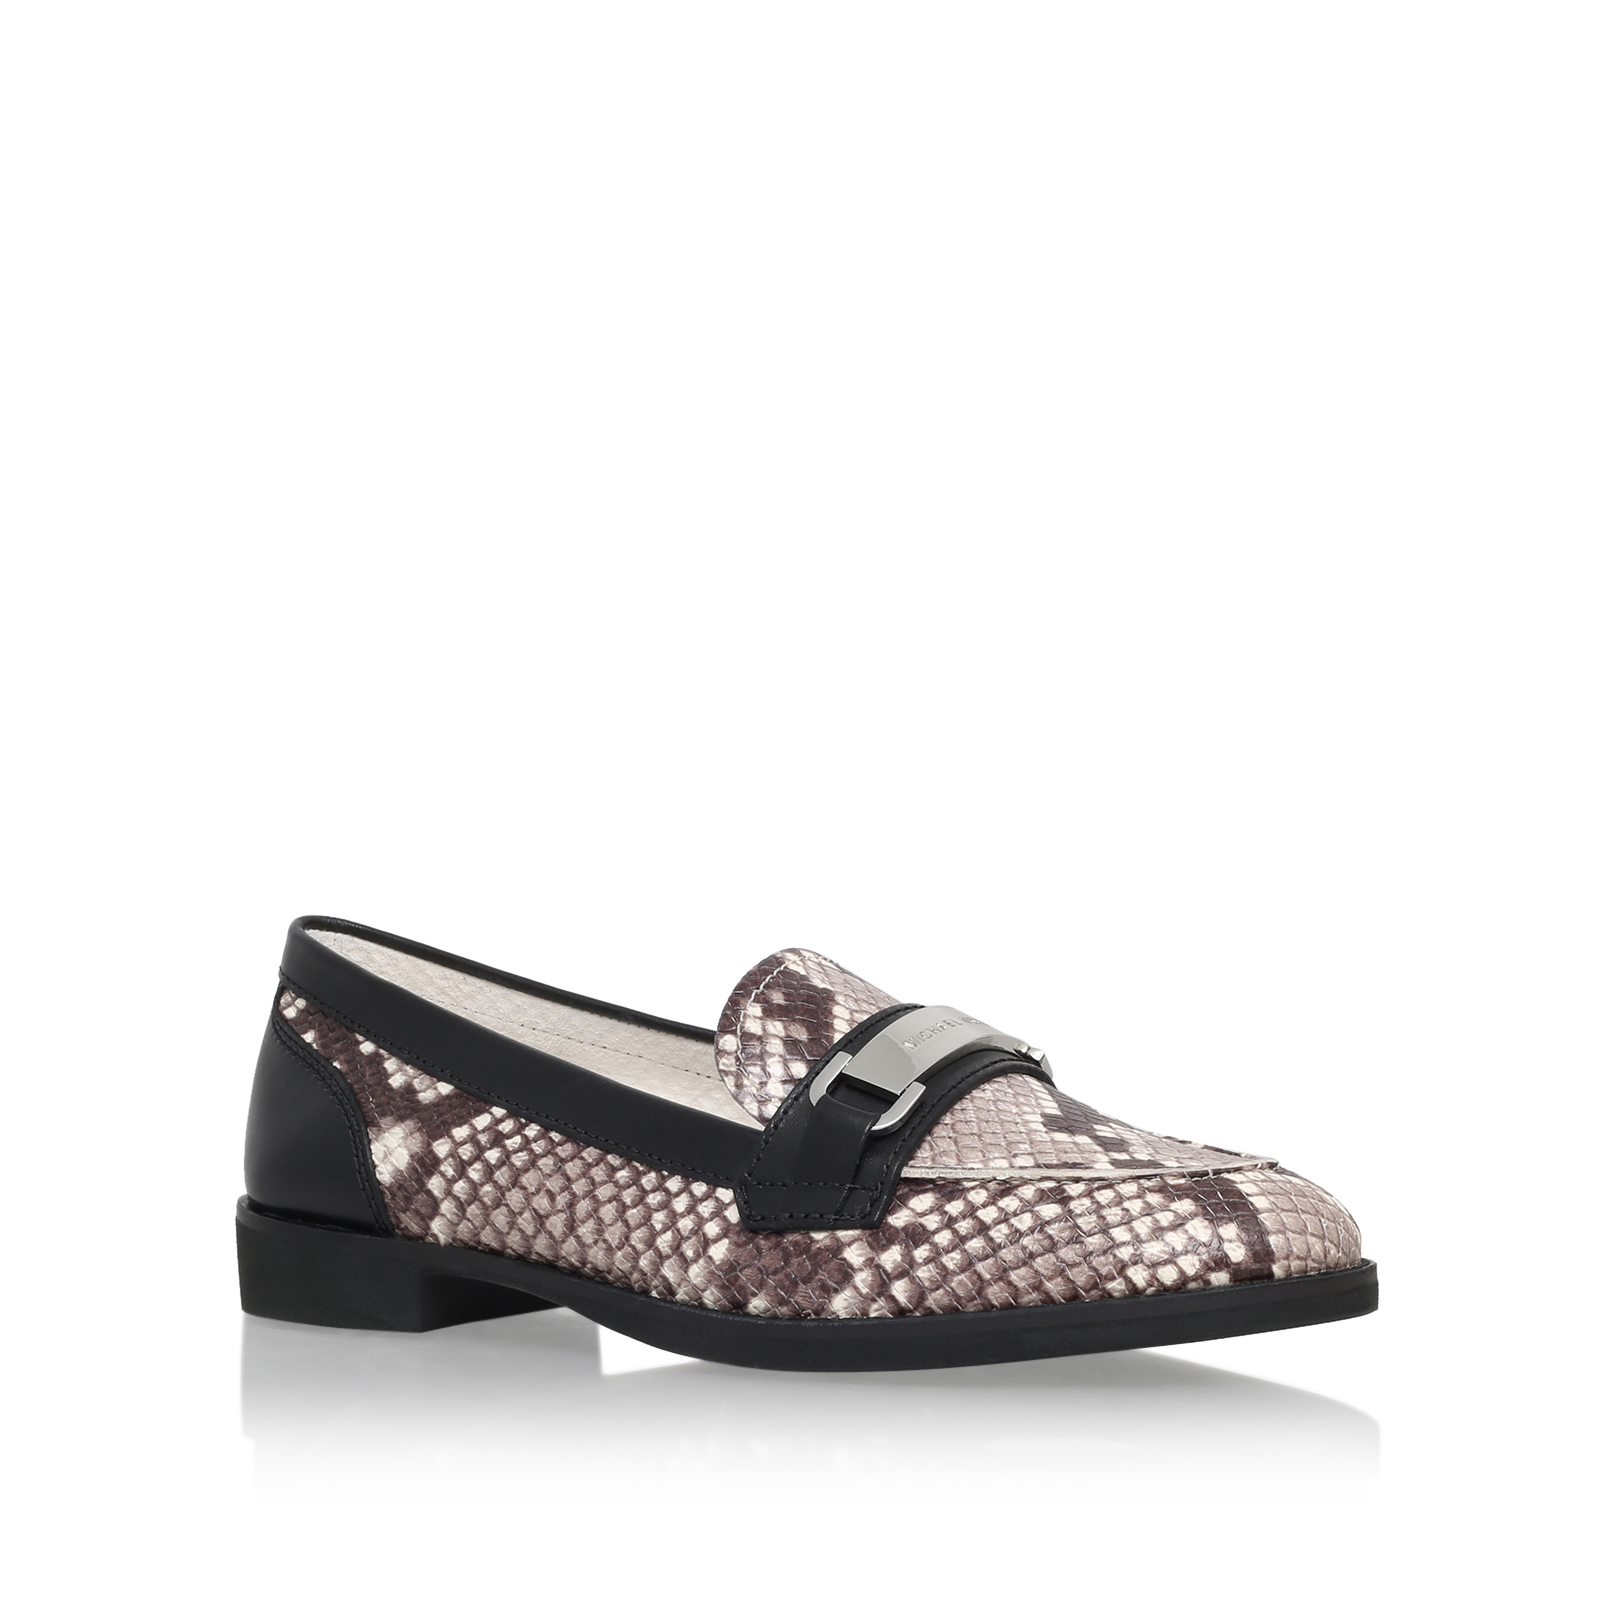 ANSLEY LOAFER